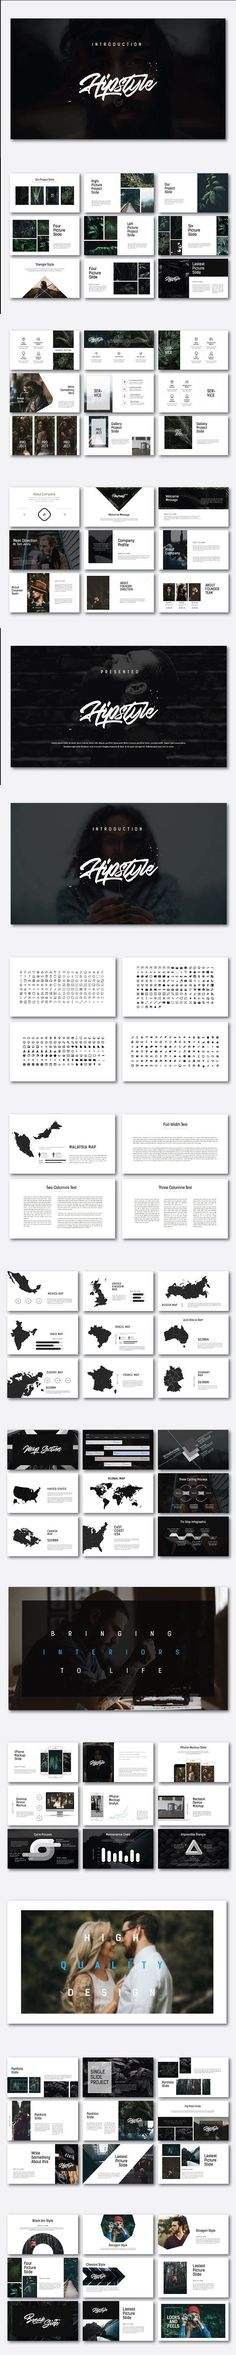 Hipstyle Multipurpose Keynote. Presentation Templates